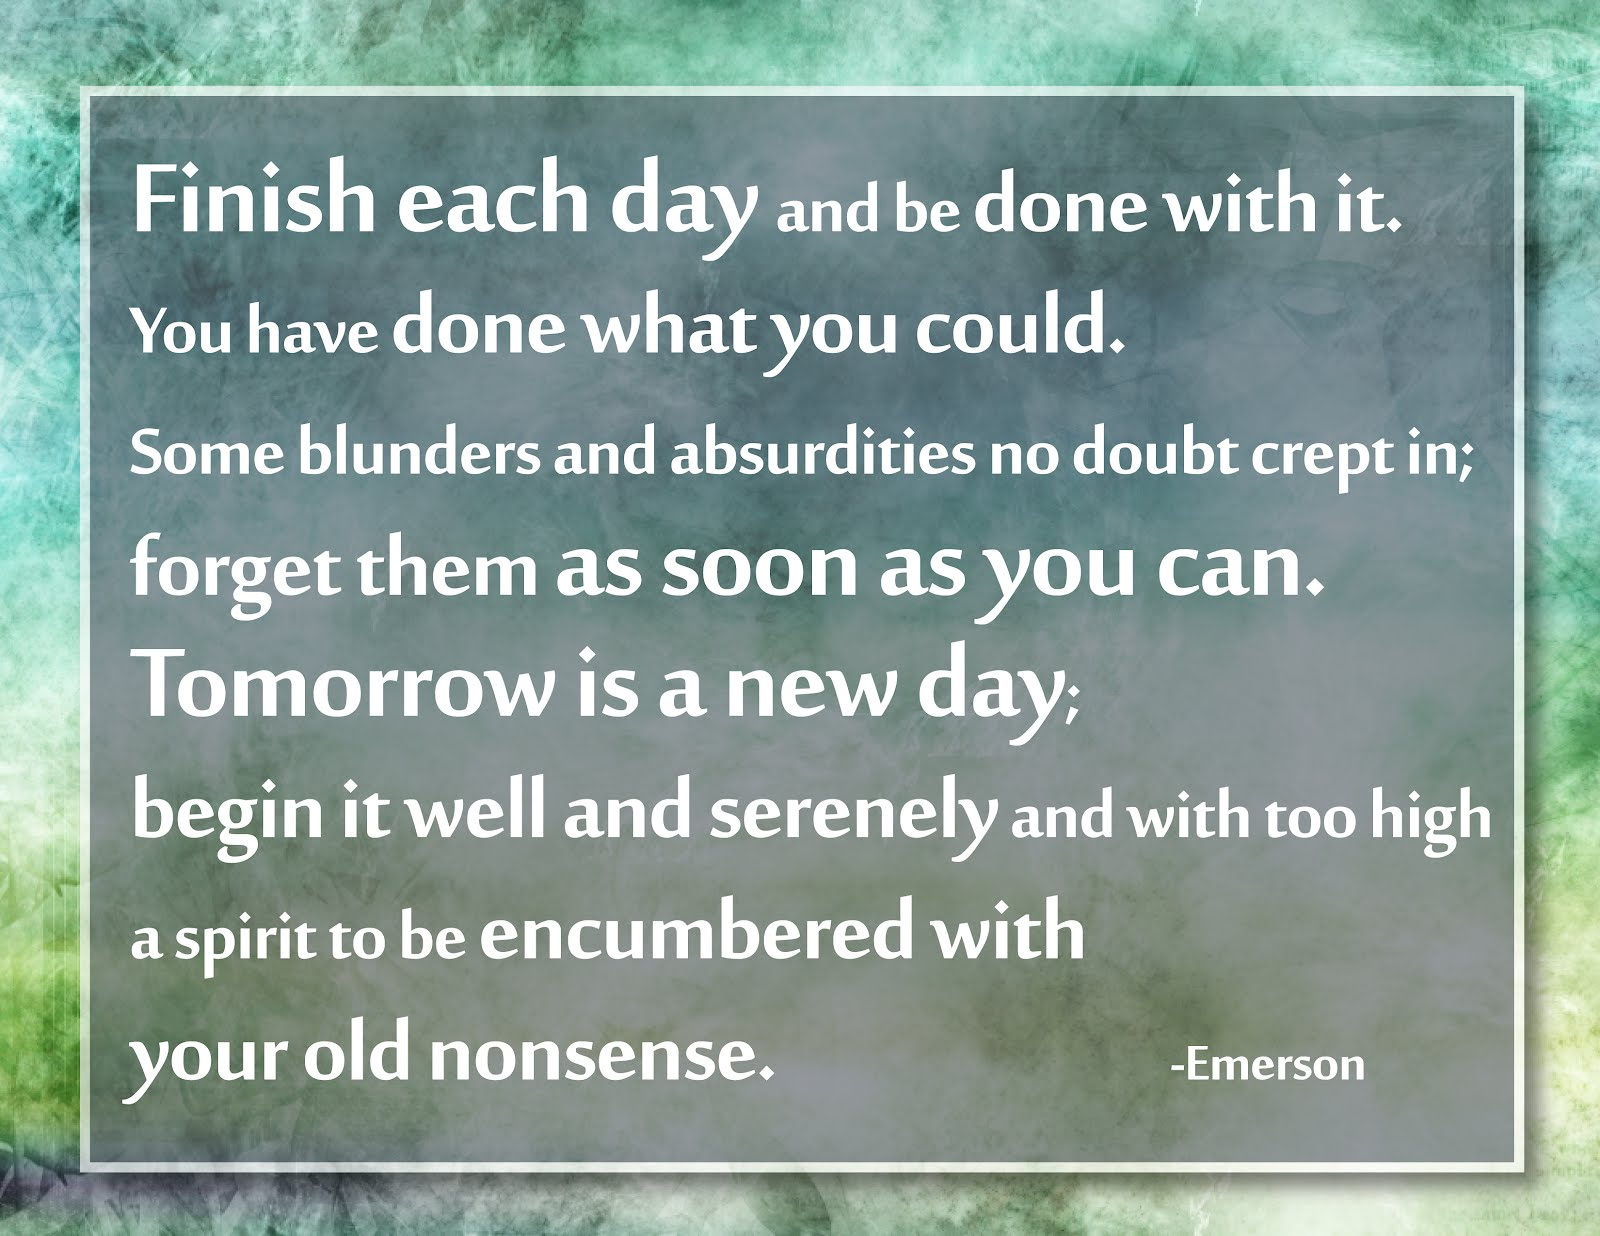 emerson 39 s finish each day quote inspirational message